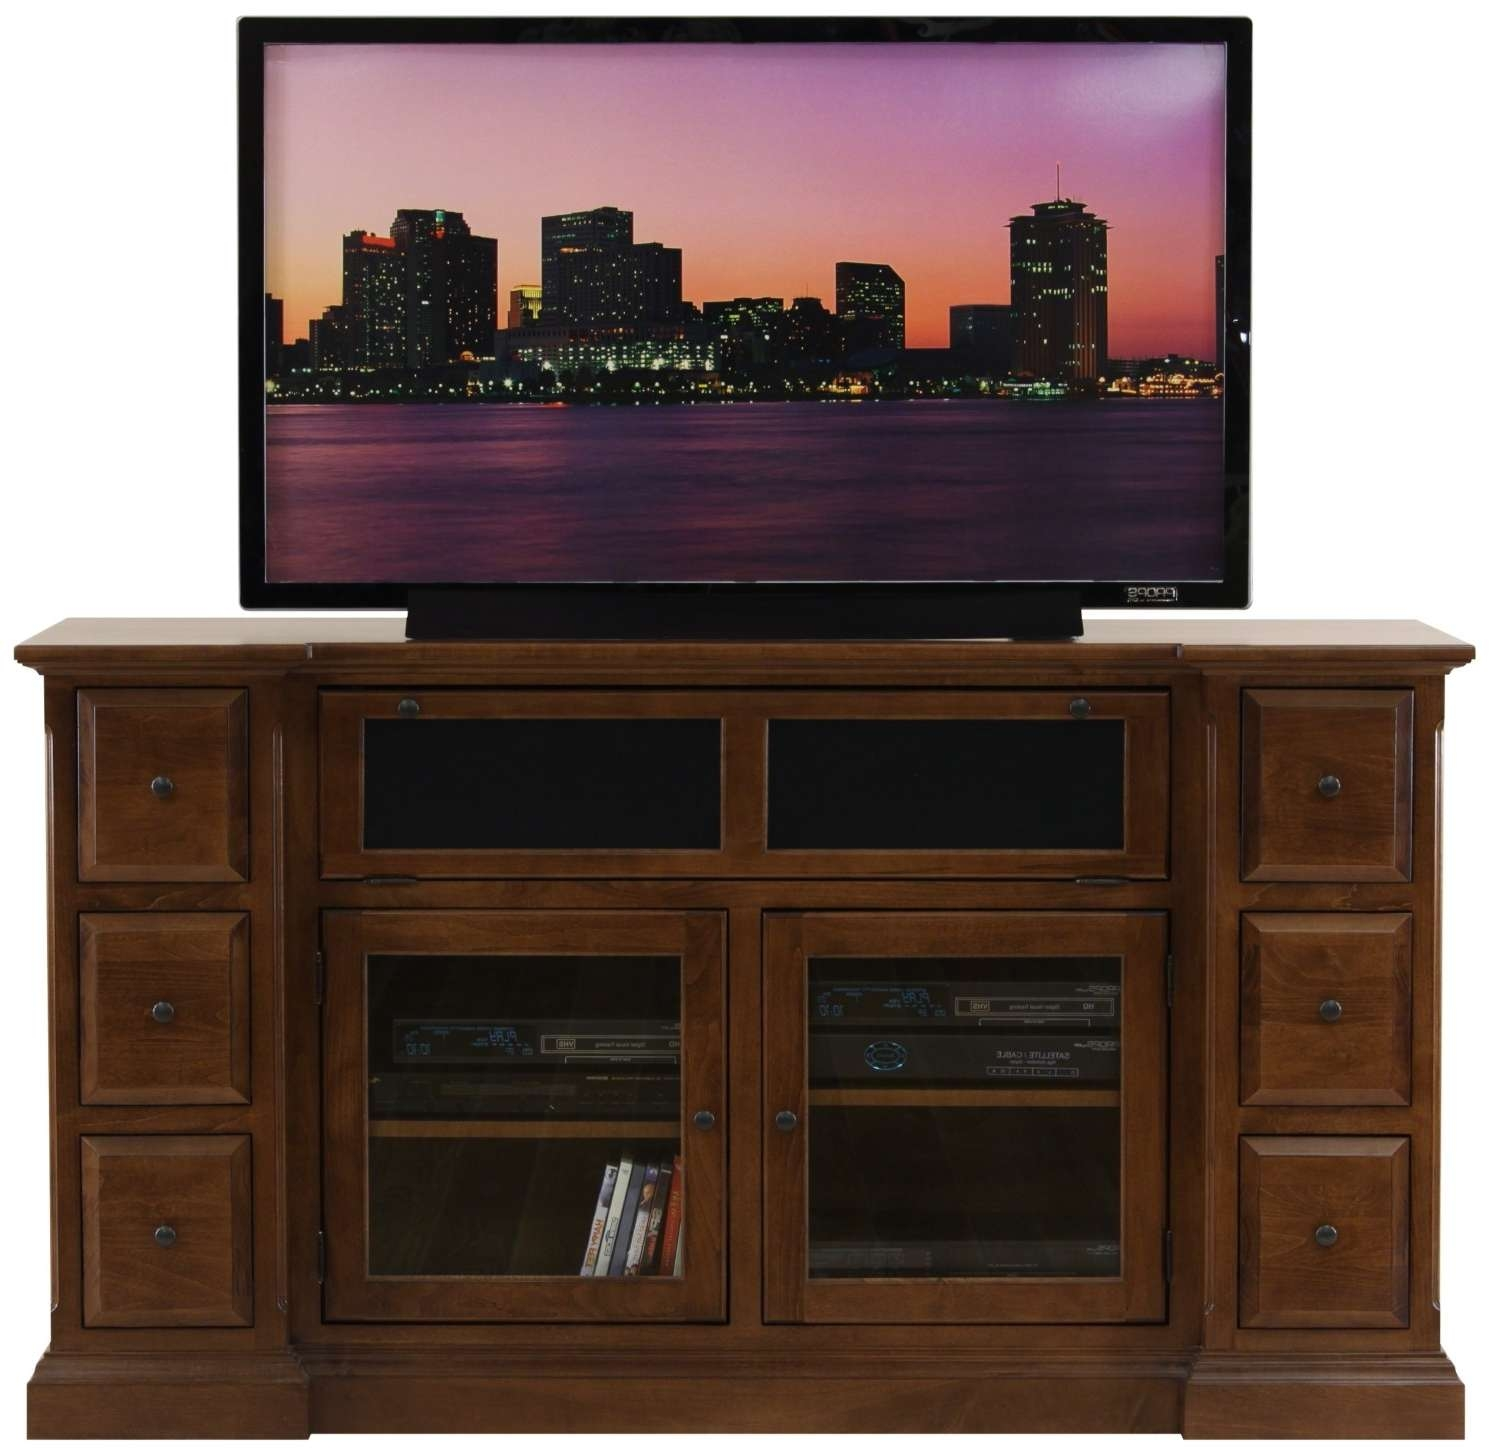 Brown Wooden Tv Stand With Storage With Glass Doors Combined With Within Wooden Tv Cabinets With Glass Doors (View 4 of 20)